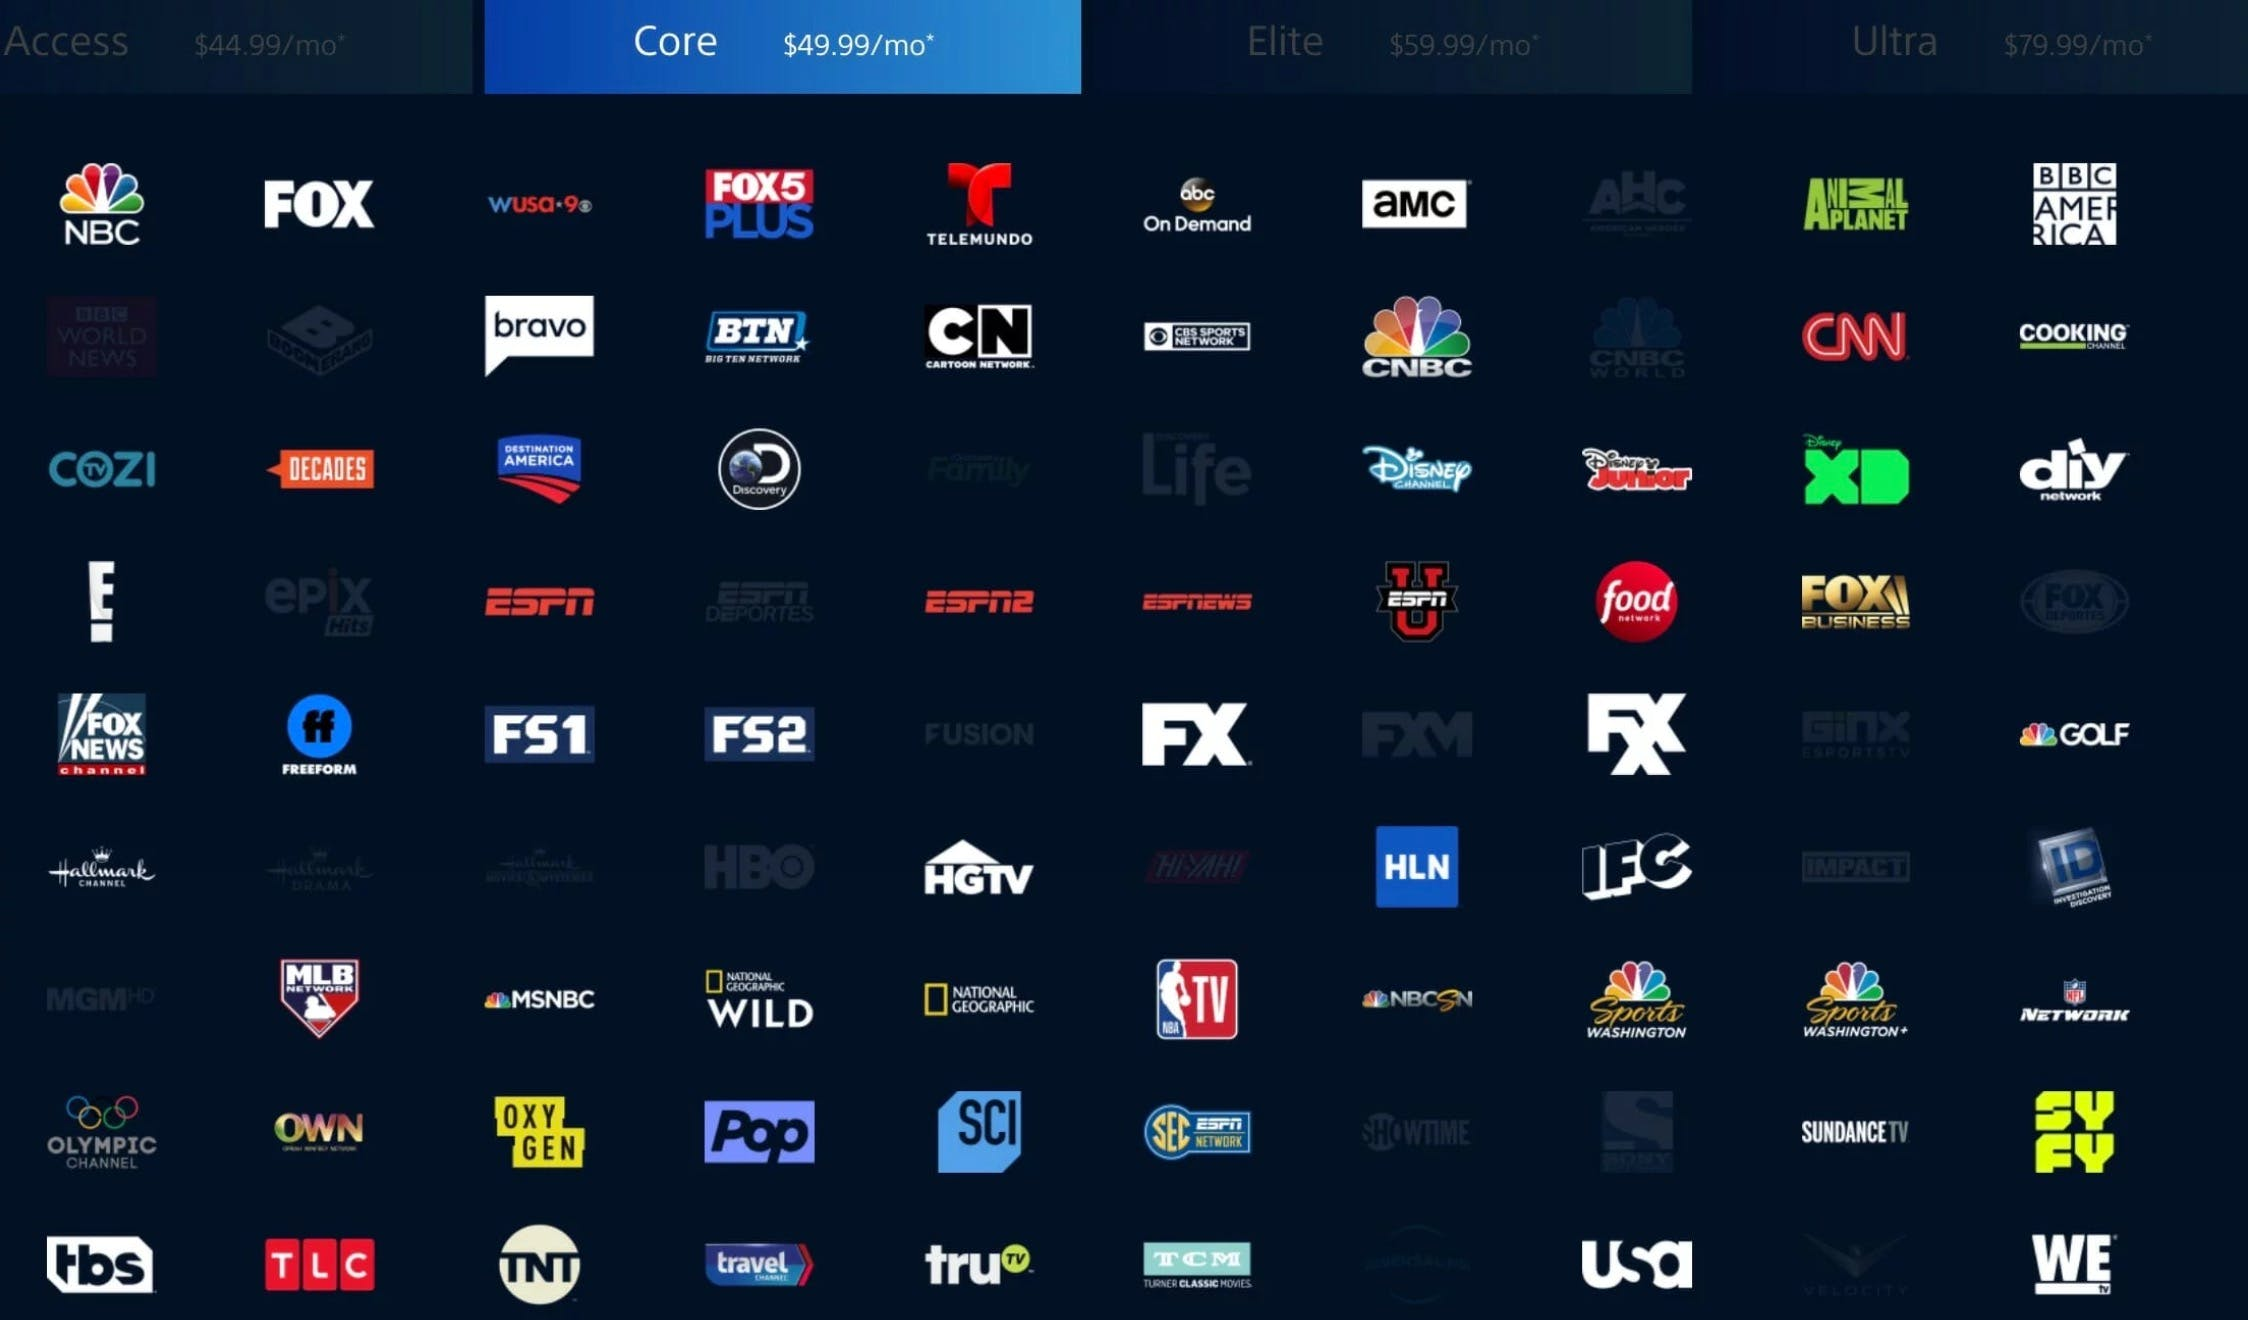 2019-international-champions-cup-real-madrid-chivas-atletico madrid soccer live stream free playstation vue core